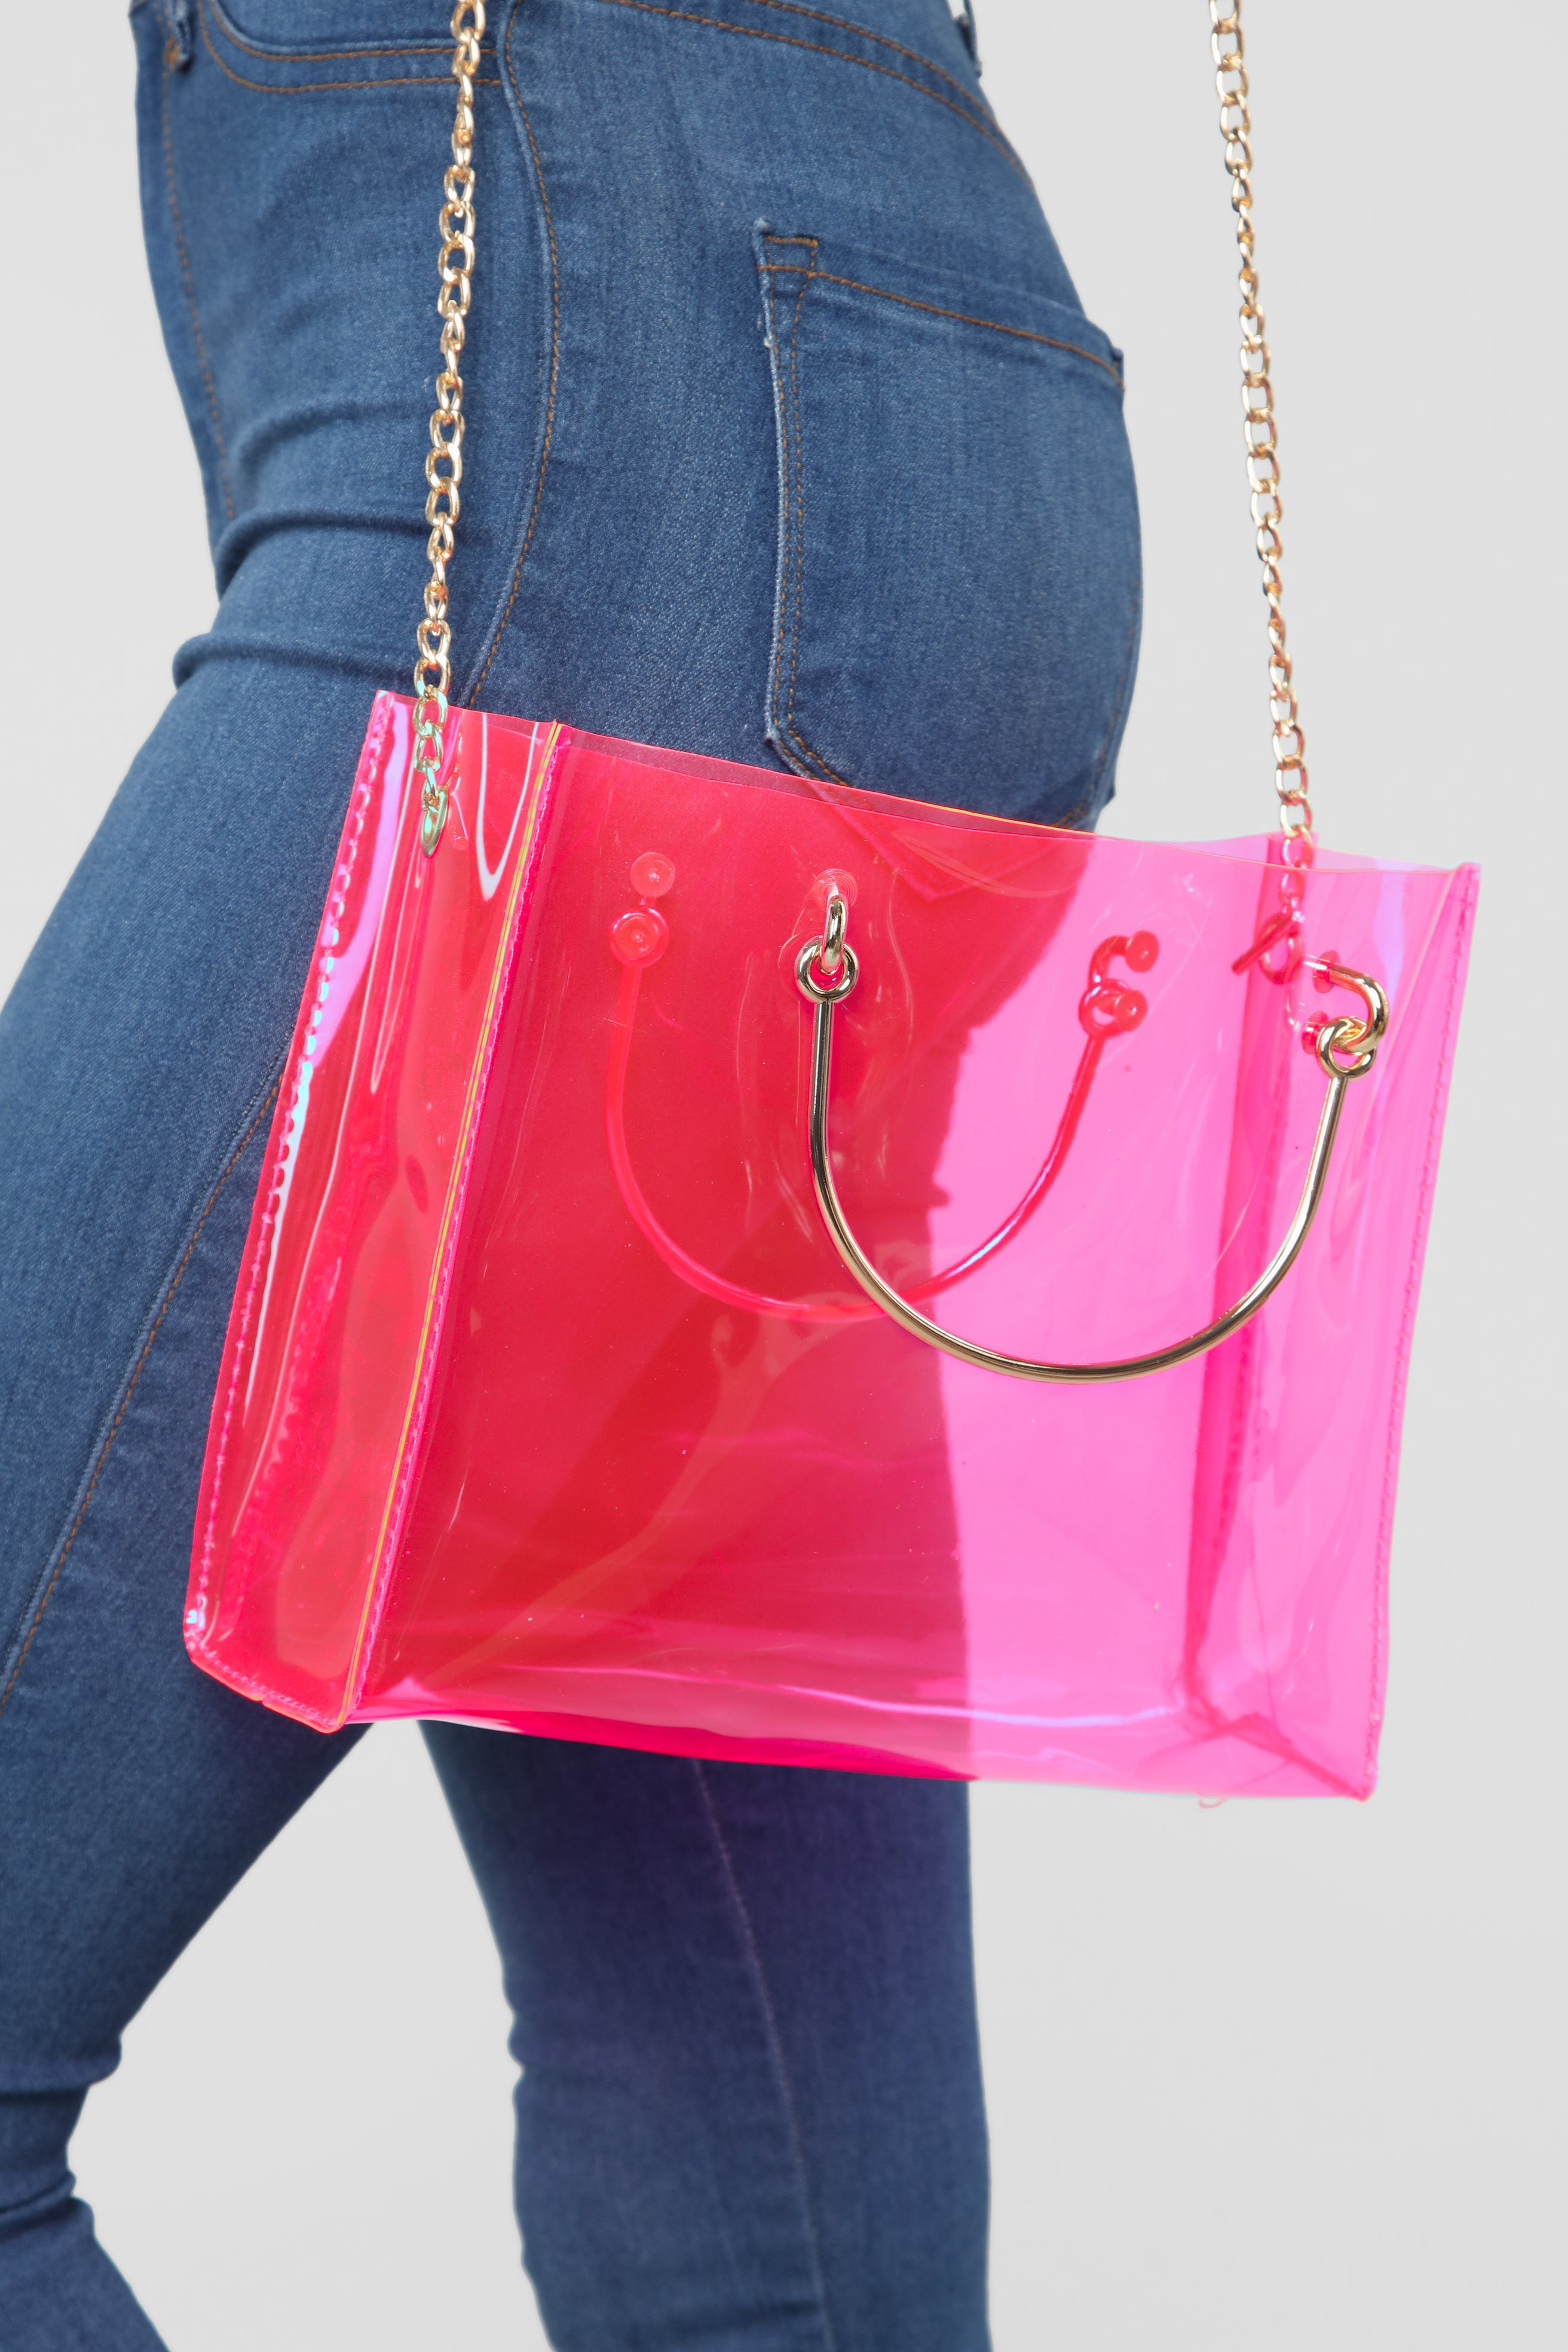 ebd962e5991f In Clear Sight Tote Bag - Pink